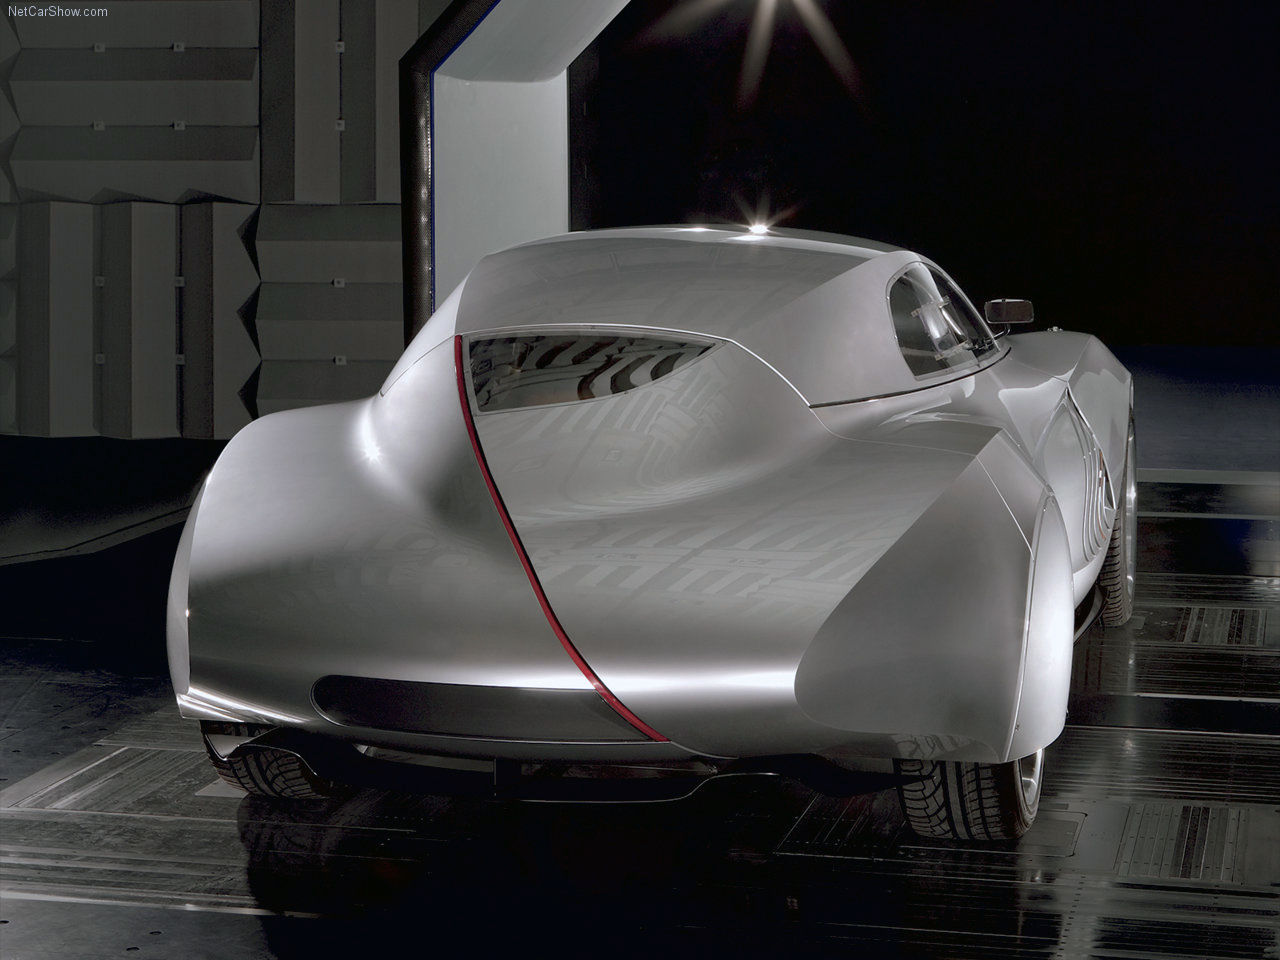 FAB WHEELS DIGEST (F.W.D.): 2006 BMW Mille Miglia Concept Coupe